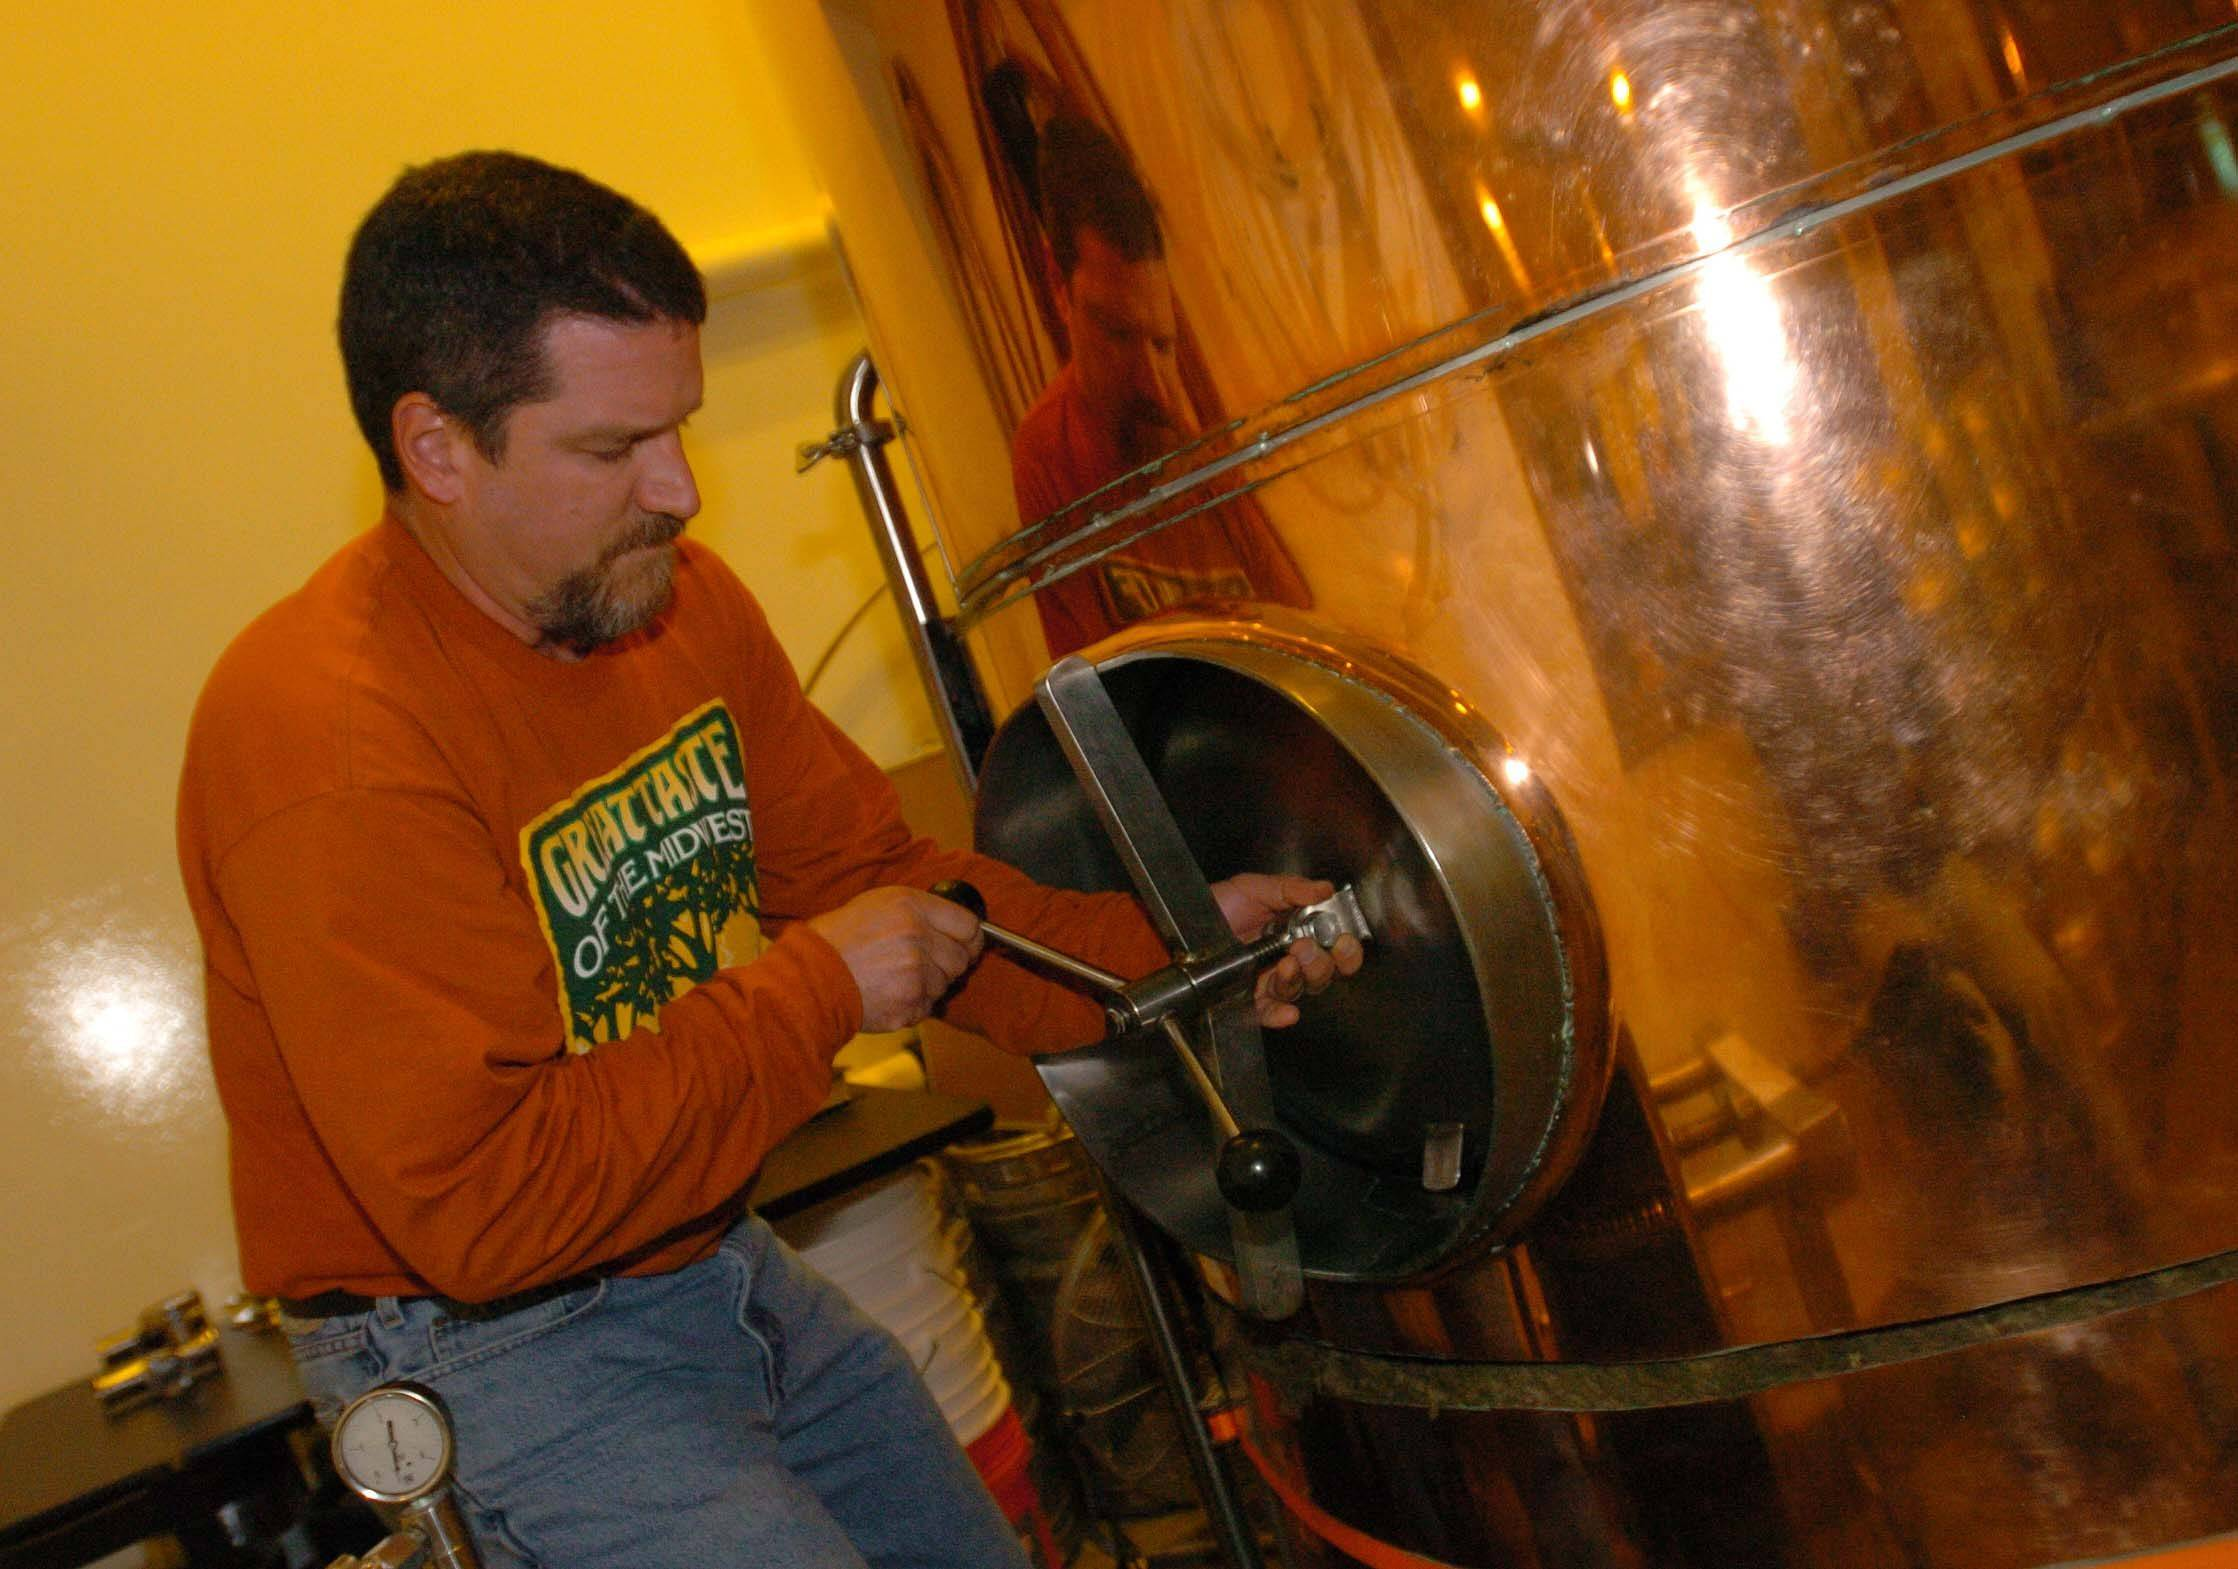 Brewmaster Ken McMullen checks on his craft beers at Limestone Brewery in Plainfield.